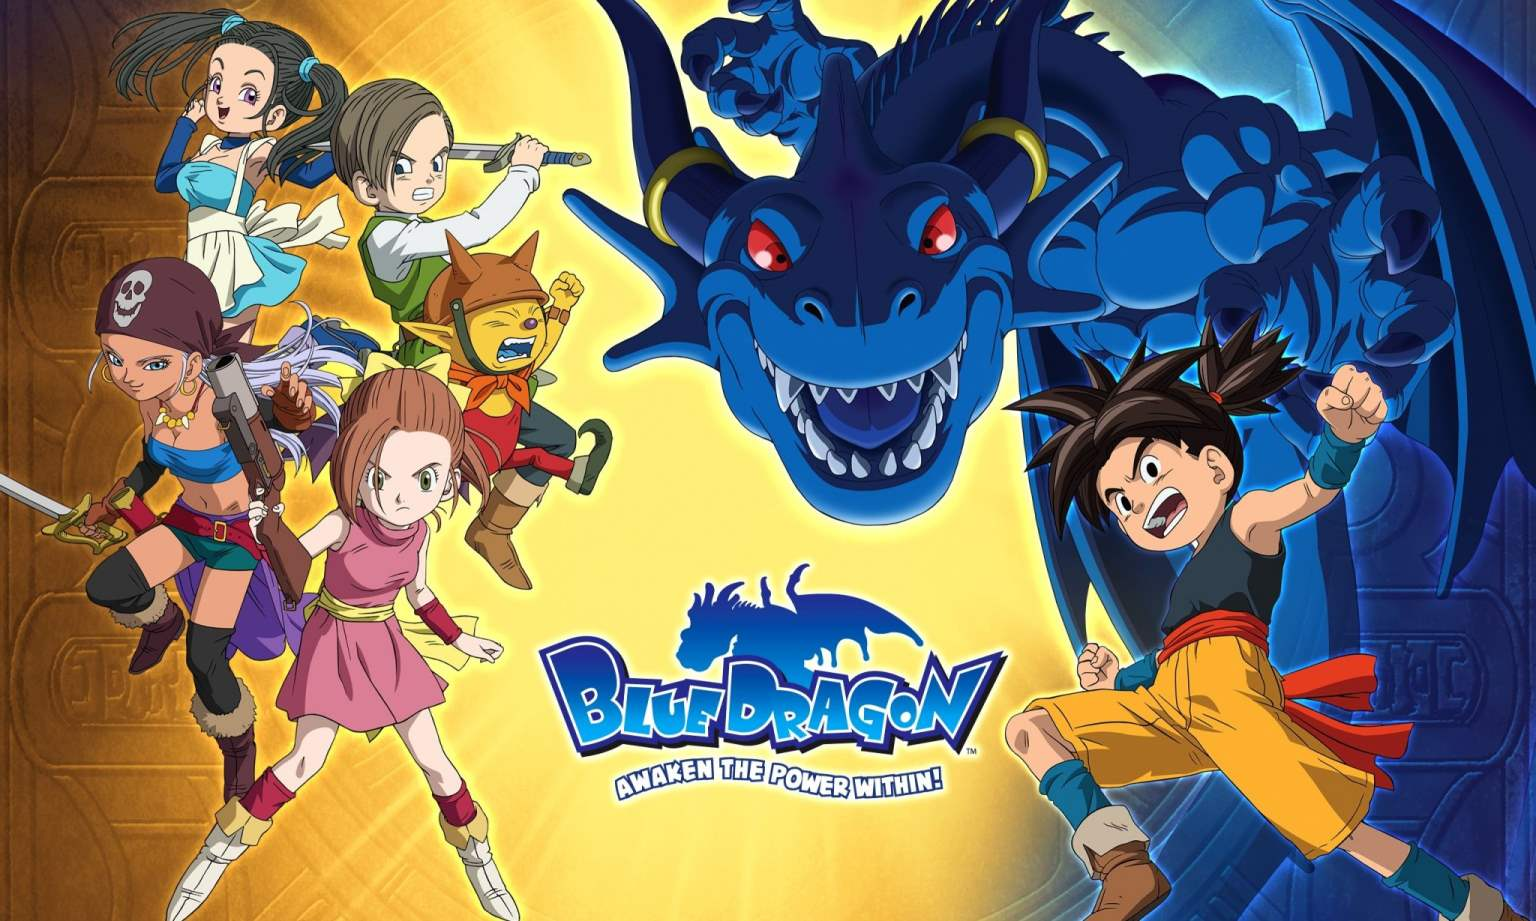 Blue Dragon Anime: Xbox Boss Talks About Blue Dragon Xbox One Backwards